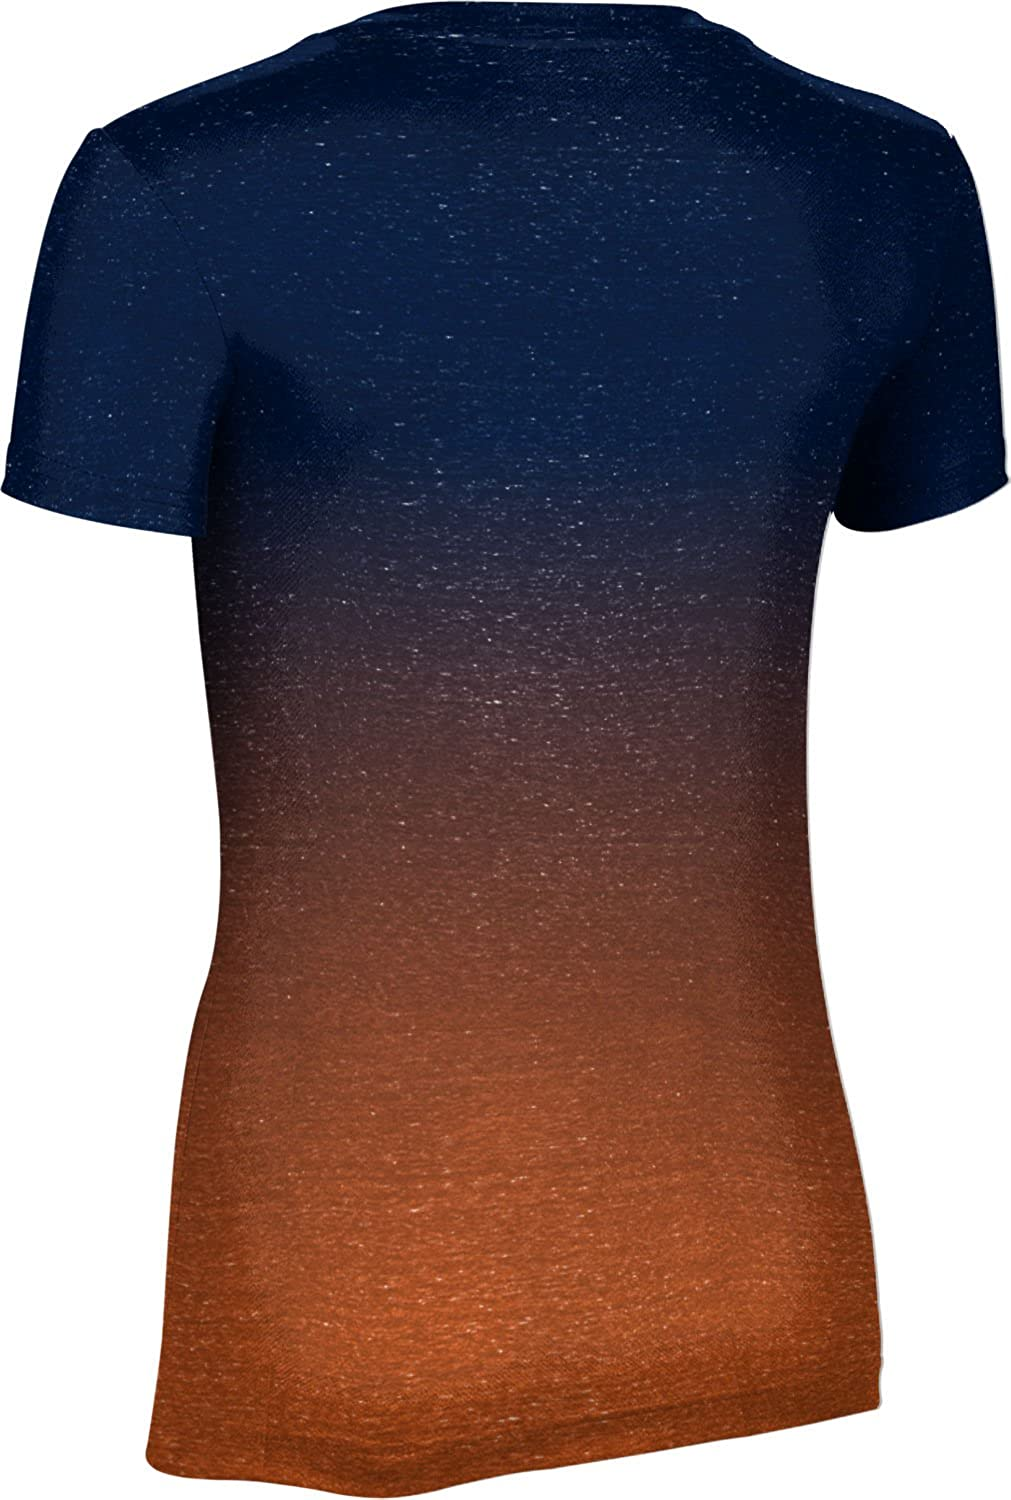 ProSphere Utica College University Girls Performance T-Shirt Ombre